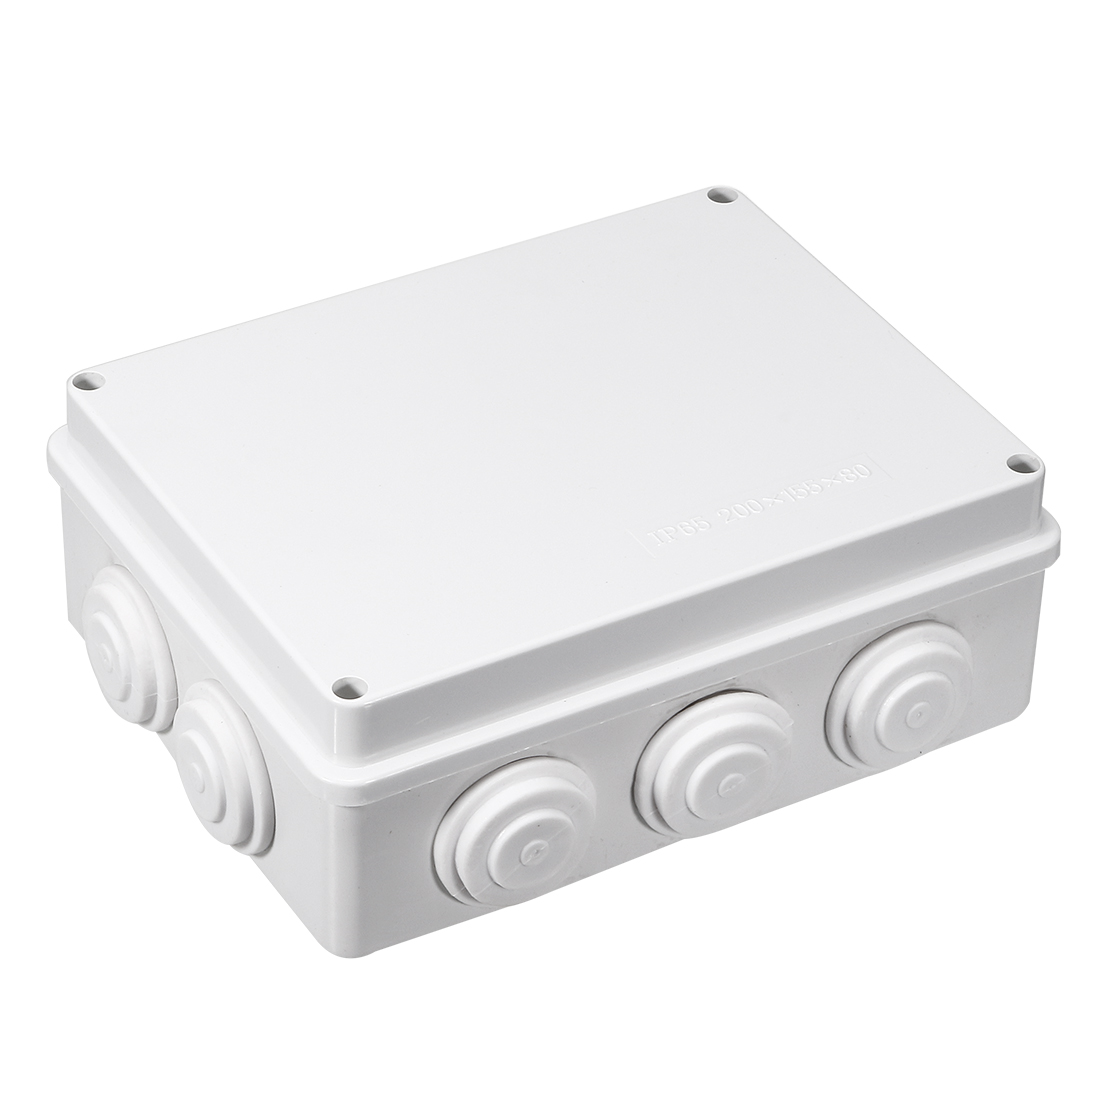 ABS IP65 Waterproof 35mm Hole 10 Cable Entries Junction Box 200x155x80mm